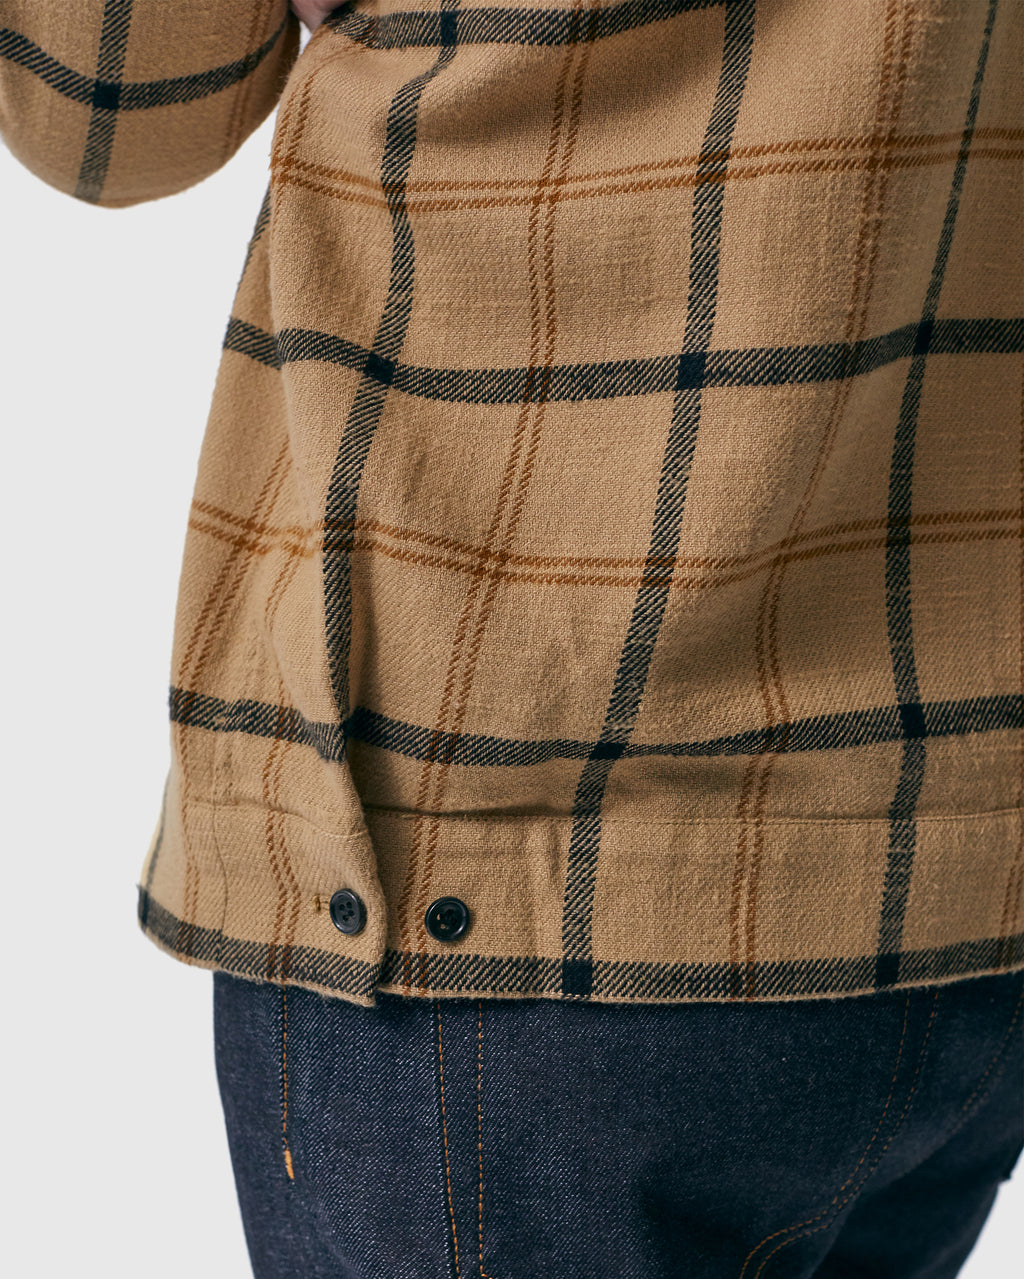 The Dodd Shirt in Tan Plaid